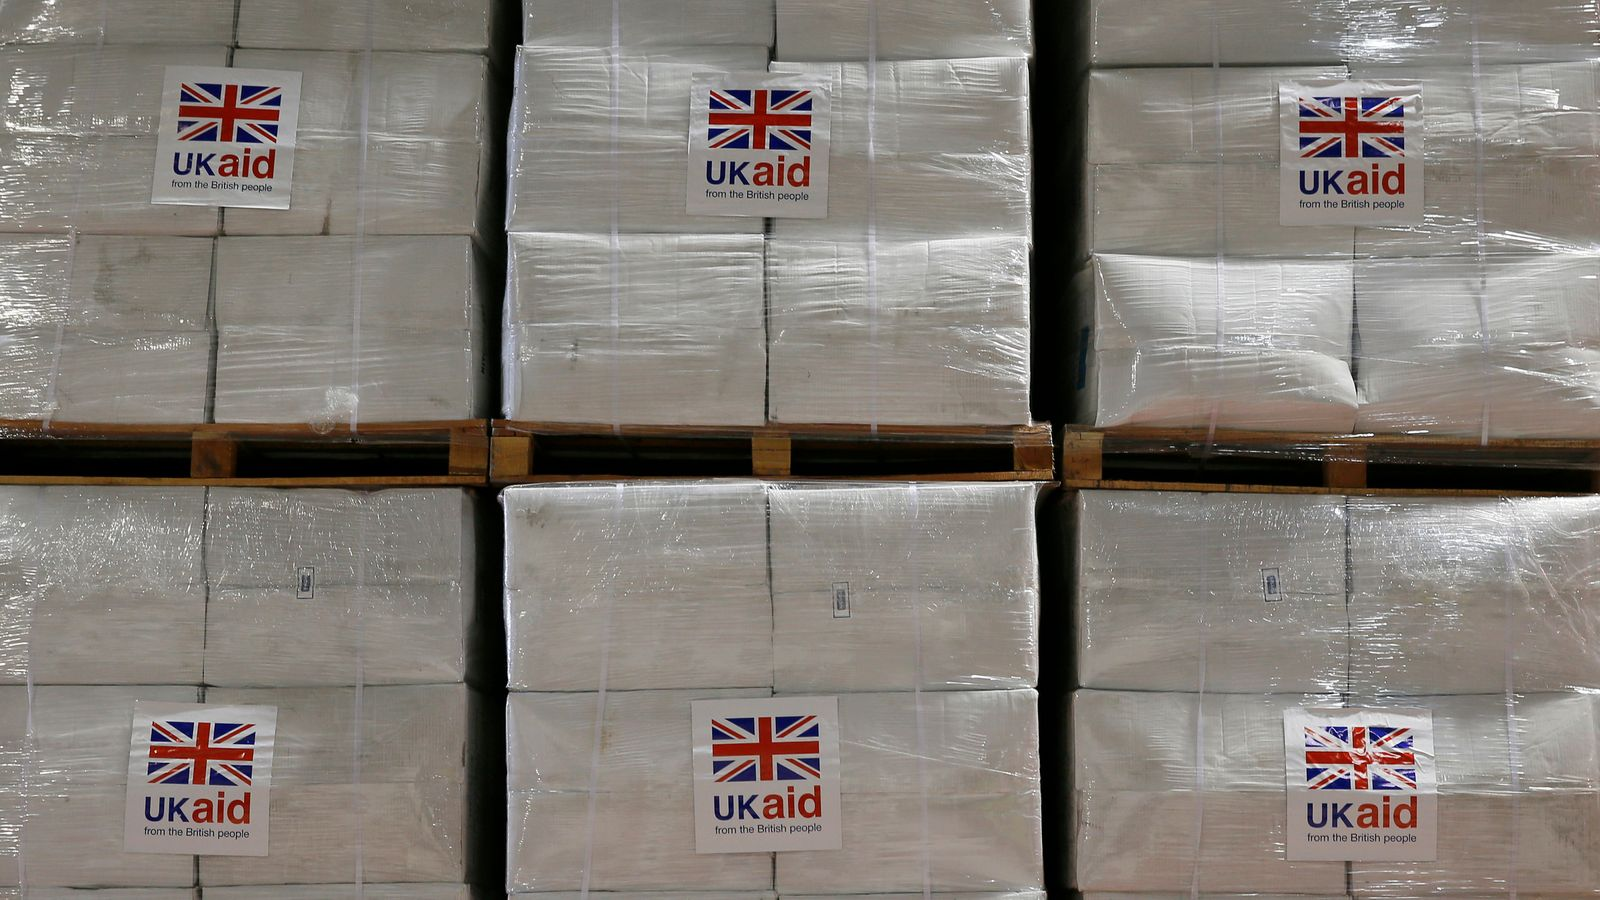 MPs to vote on foreign aid budget cuts, but tax rises are threatened if government loses